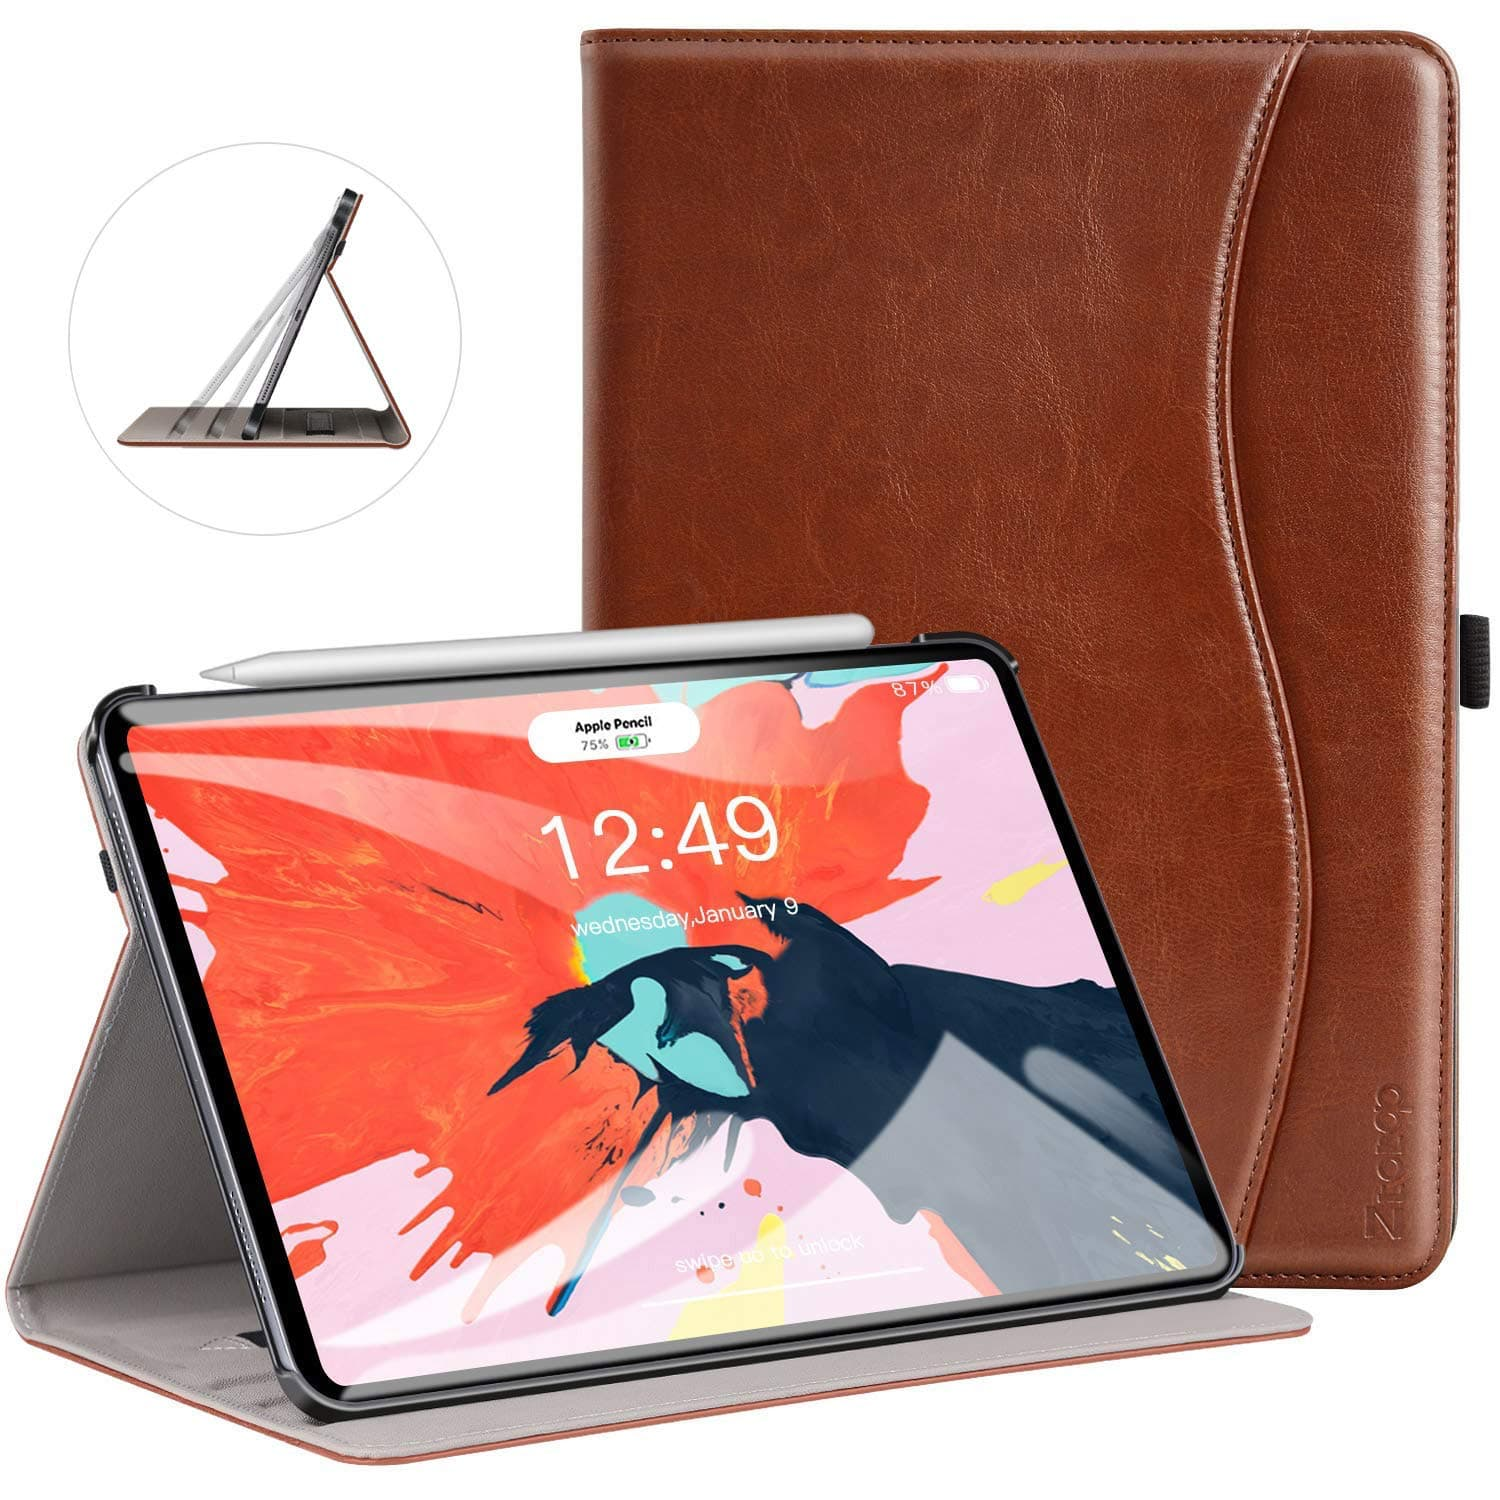 Ztotop folio case for 11-inch iPad Pro